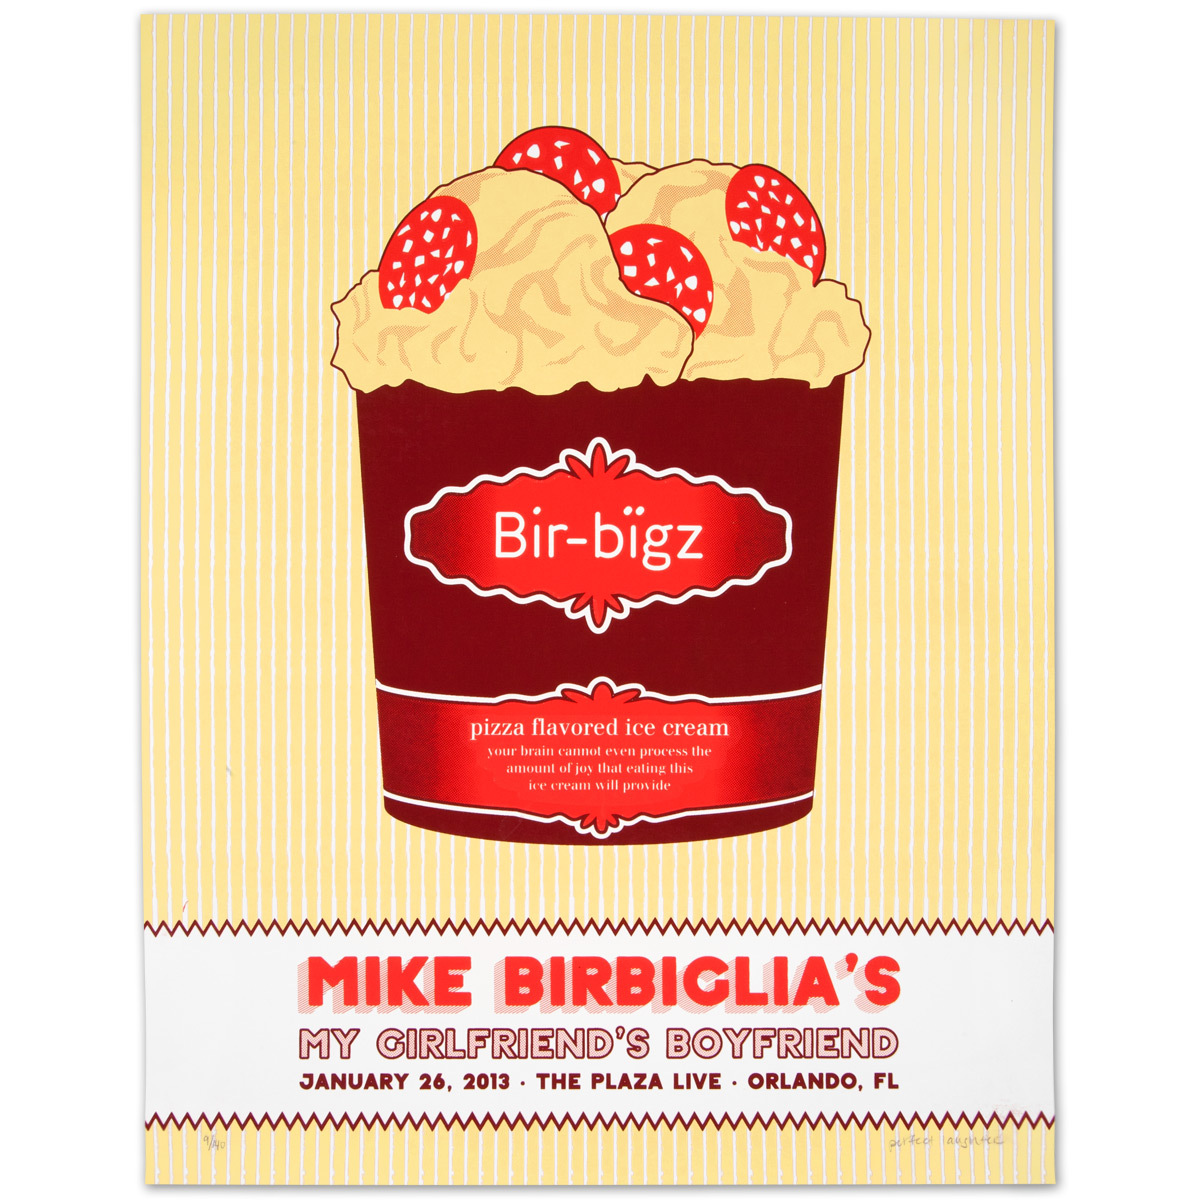 Mike Birbiglia Pizza-Flavored Ice Cream Poster - Orlando, FL 1/26/13